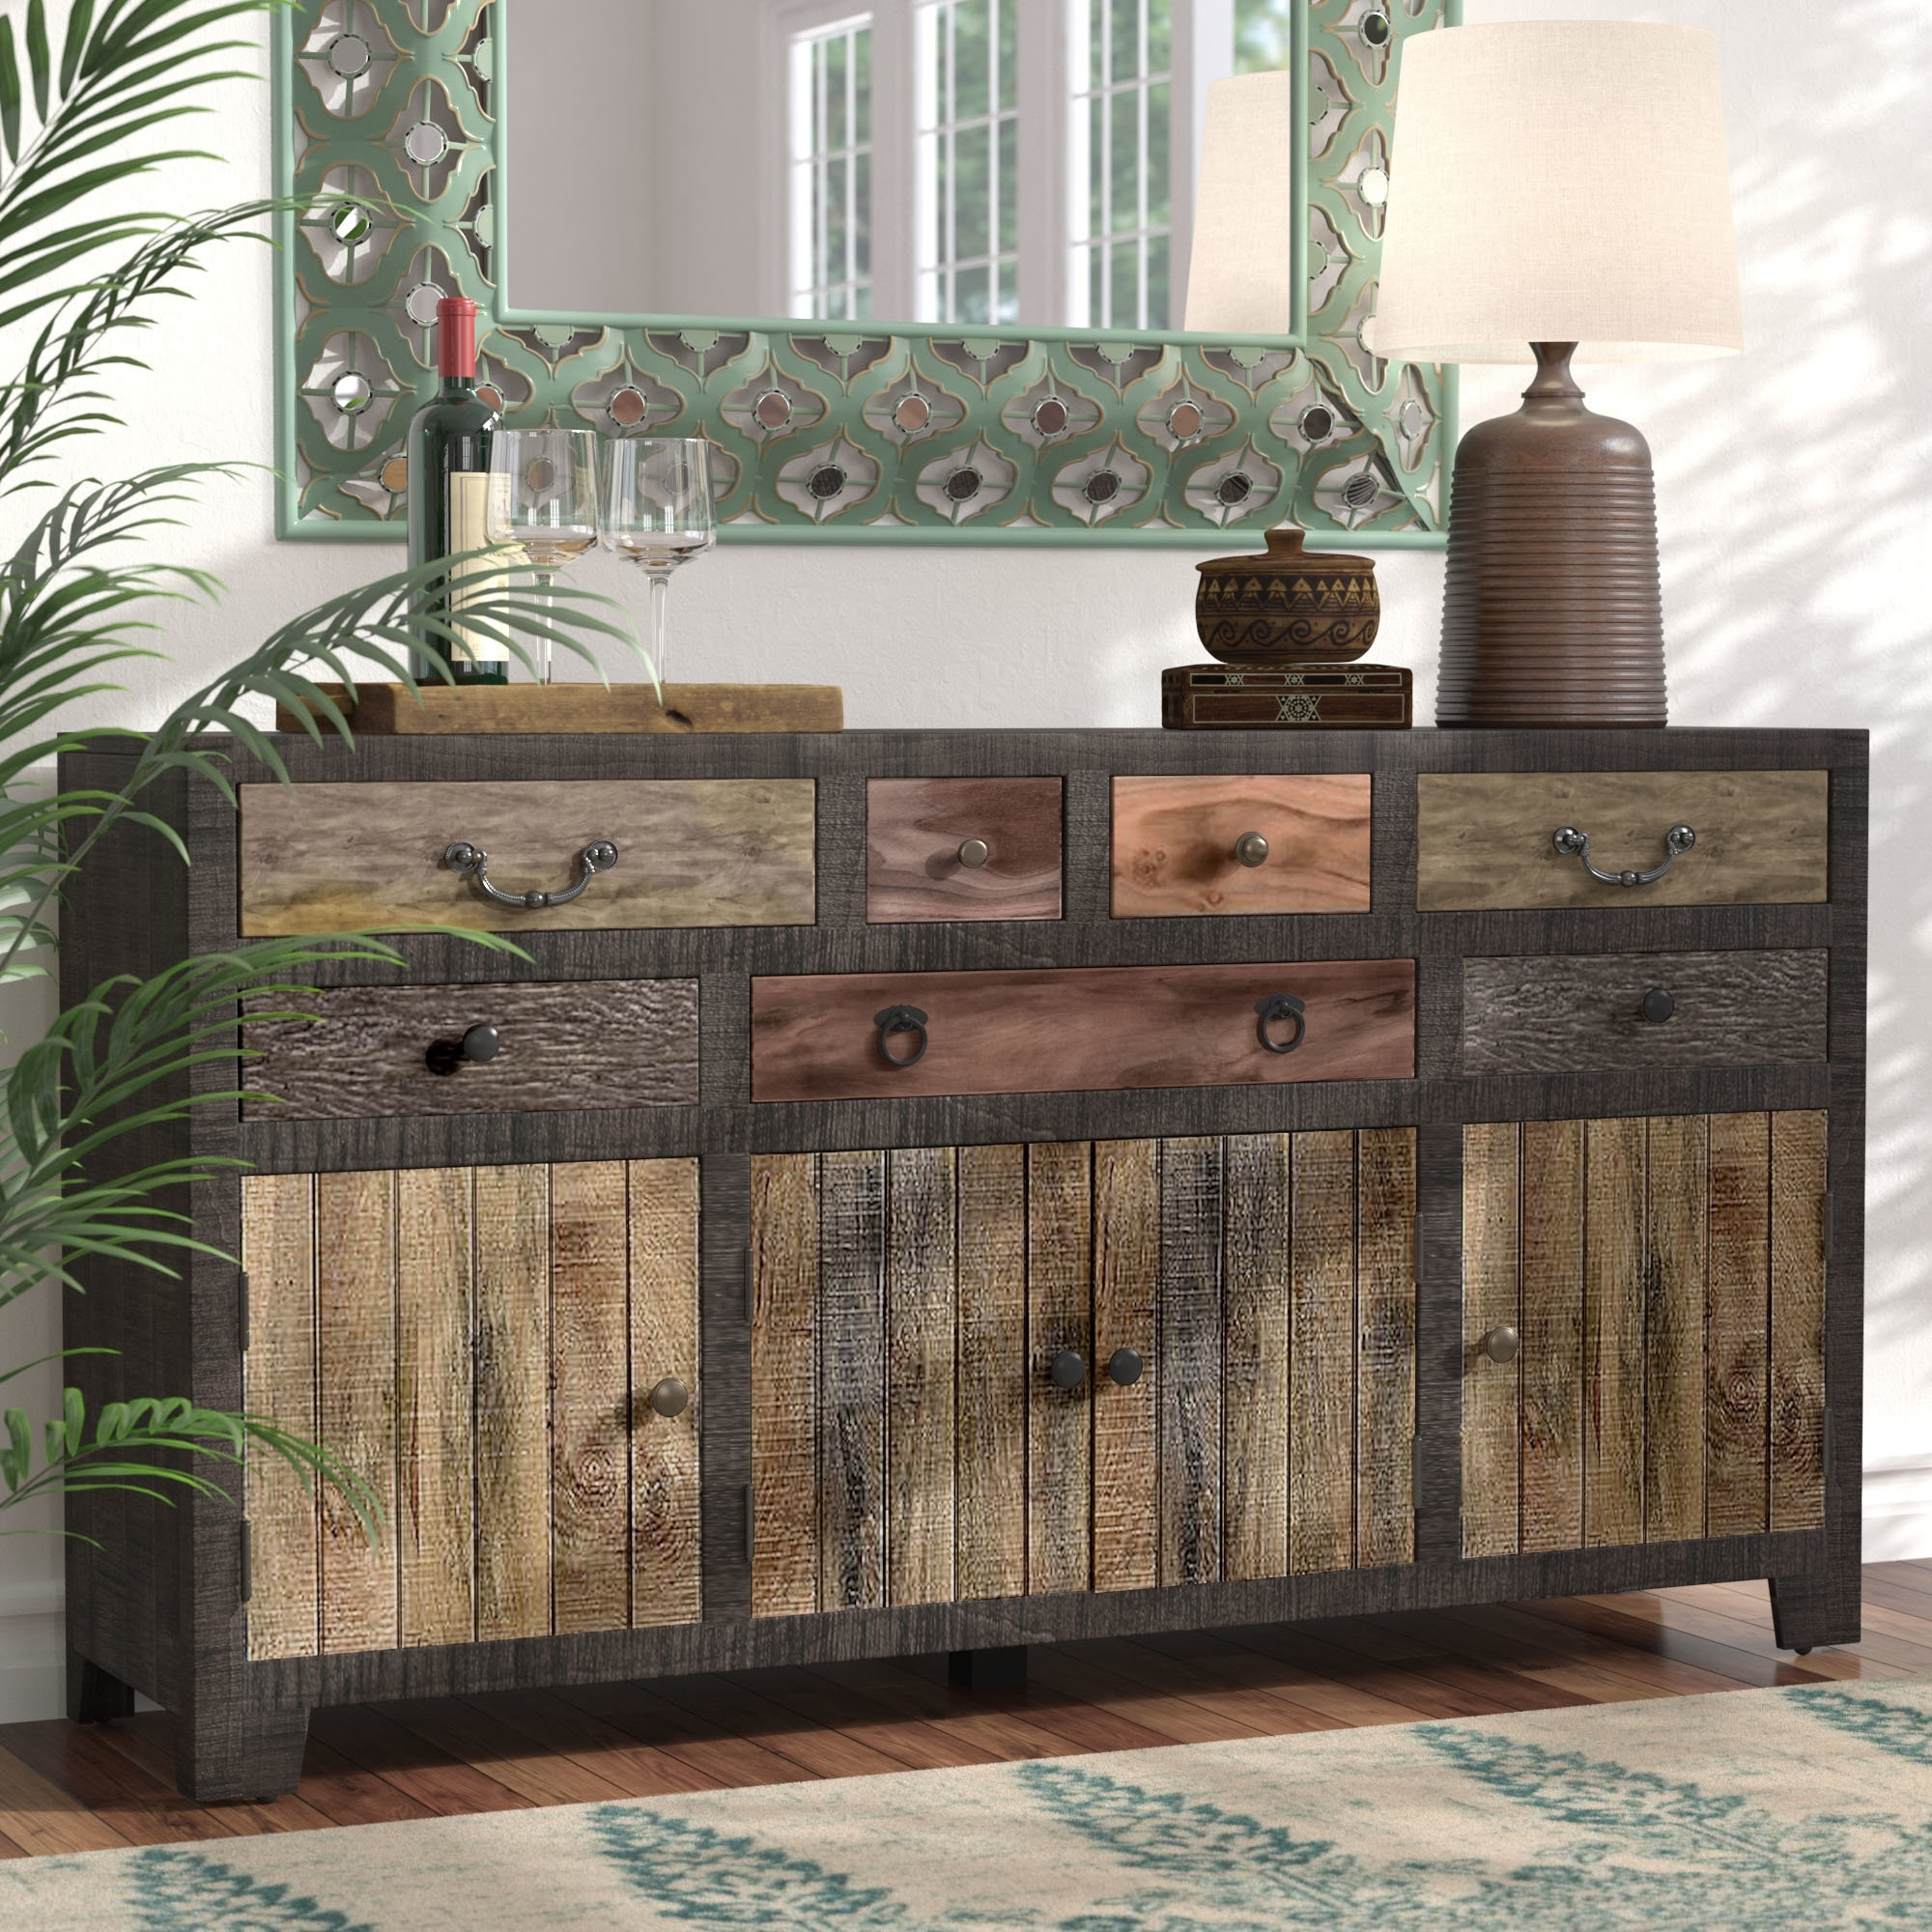 World Menagerie Moultry 7 Drawer 4 Door Sideboard & Reviews | Wayfair Intended For 4 Door 4 Drawer Metal Inserts Sideboards (Photo 20 of 30)